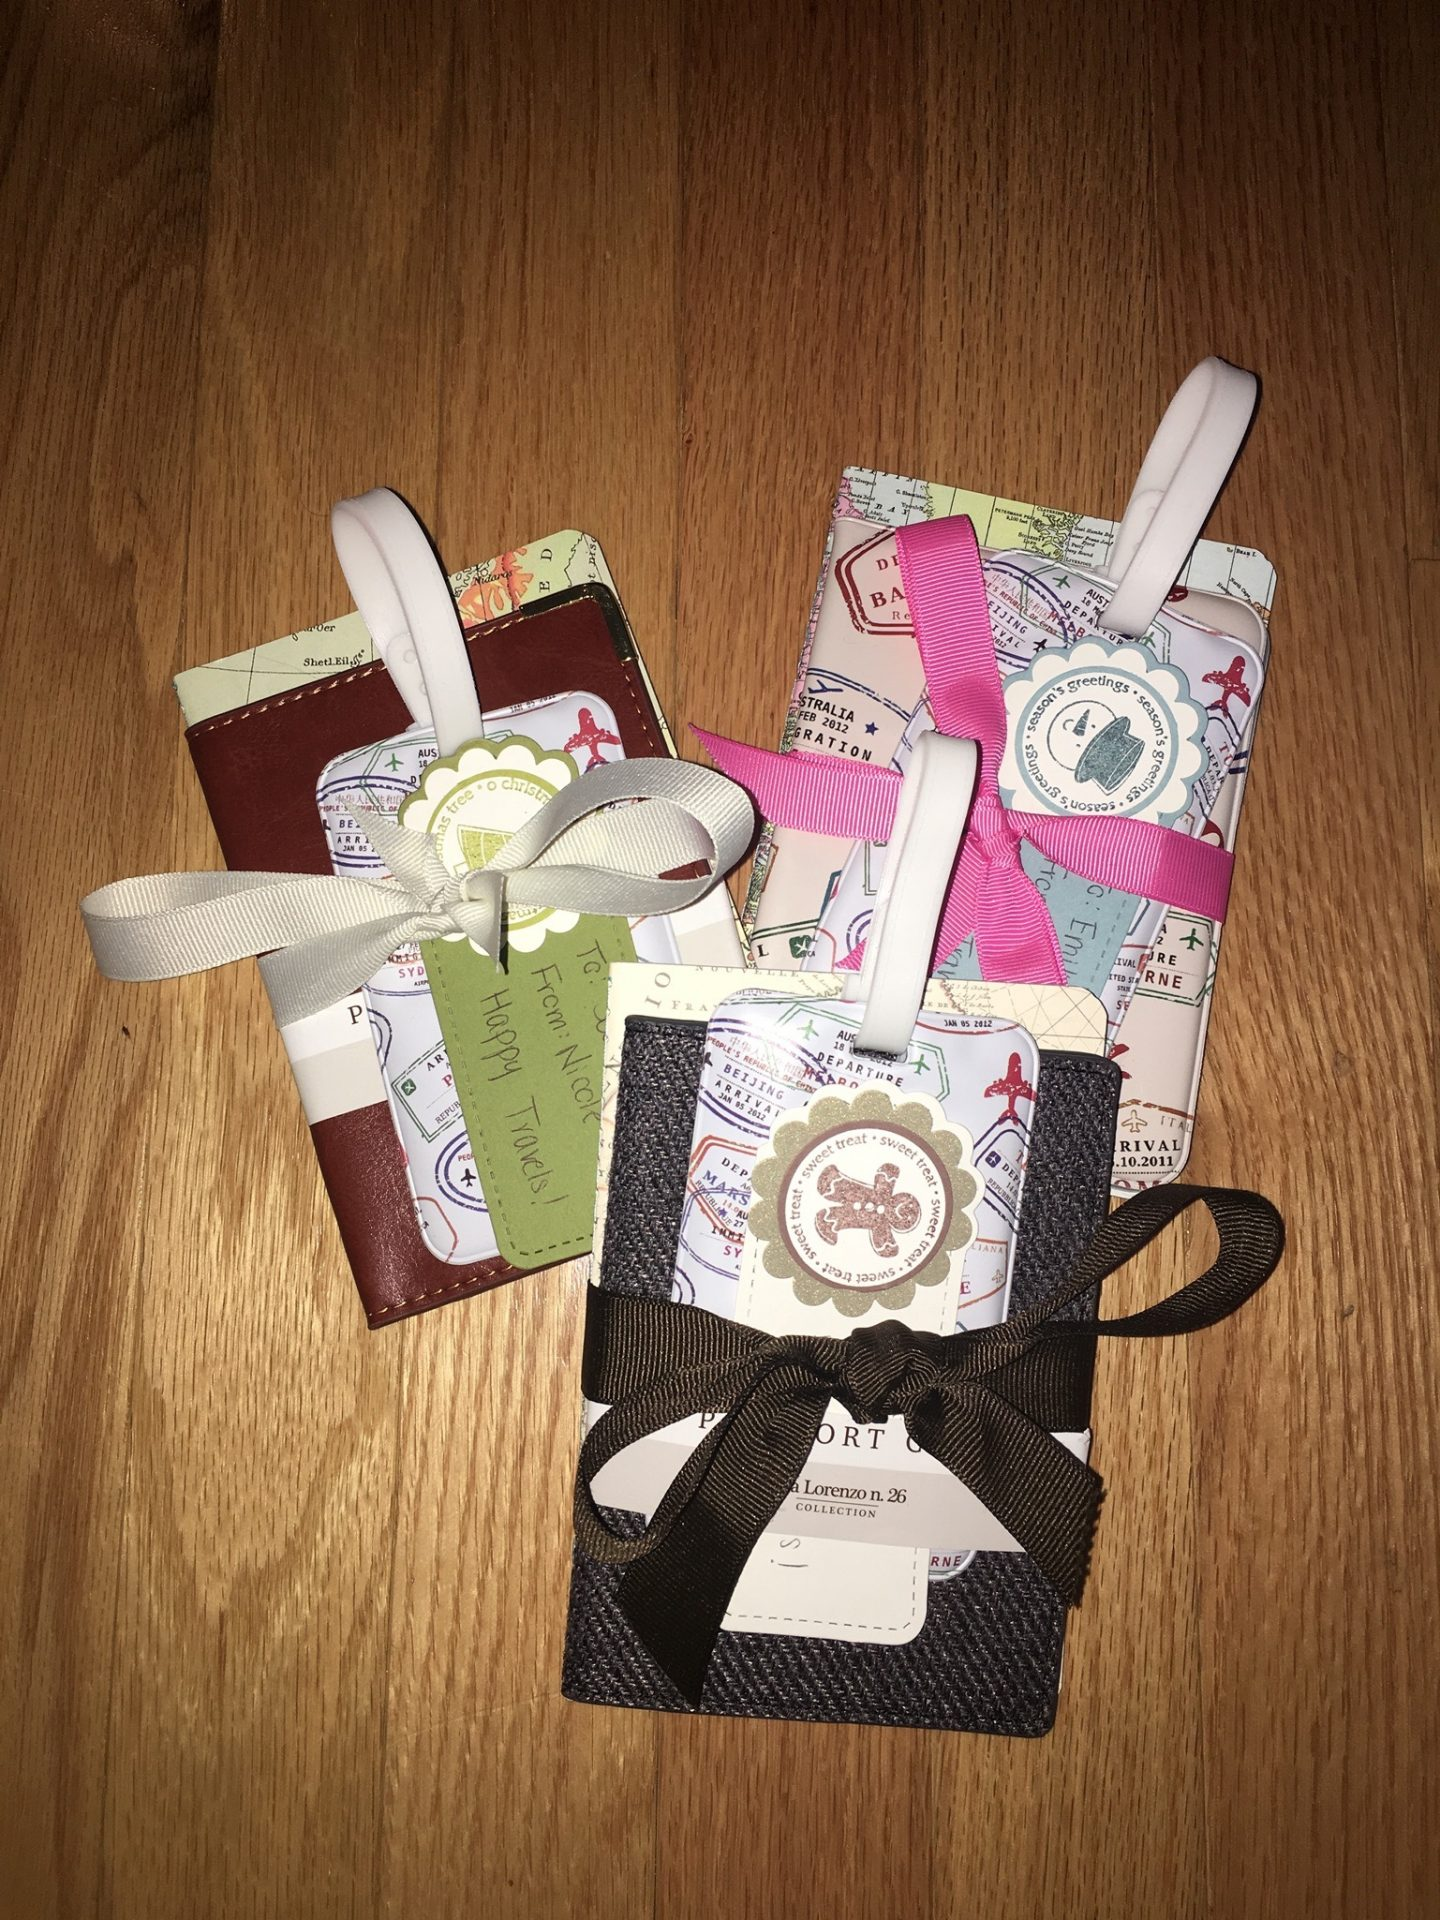 A passport cover, travel journal, and luggage tag gifts for travel lovers